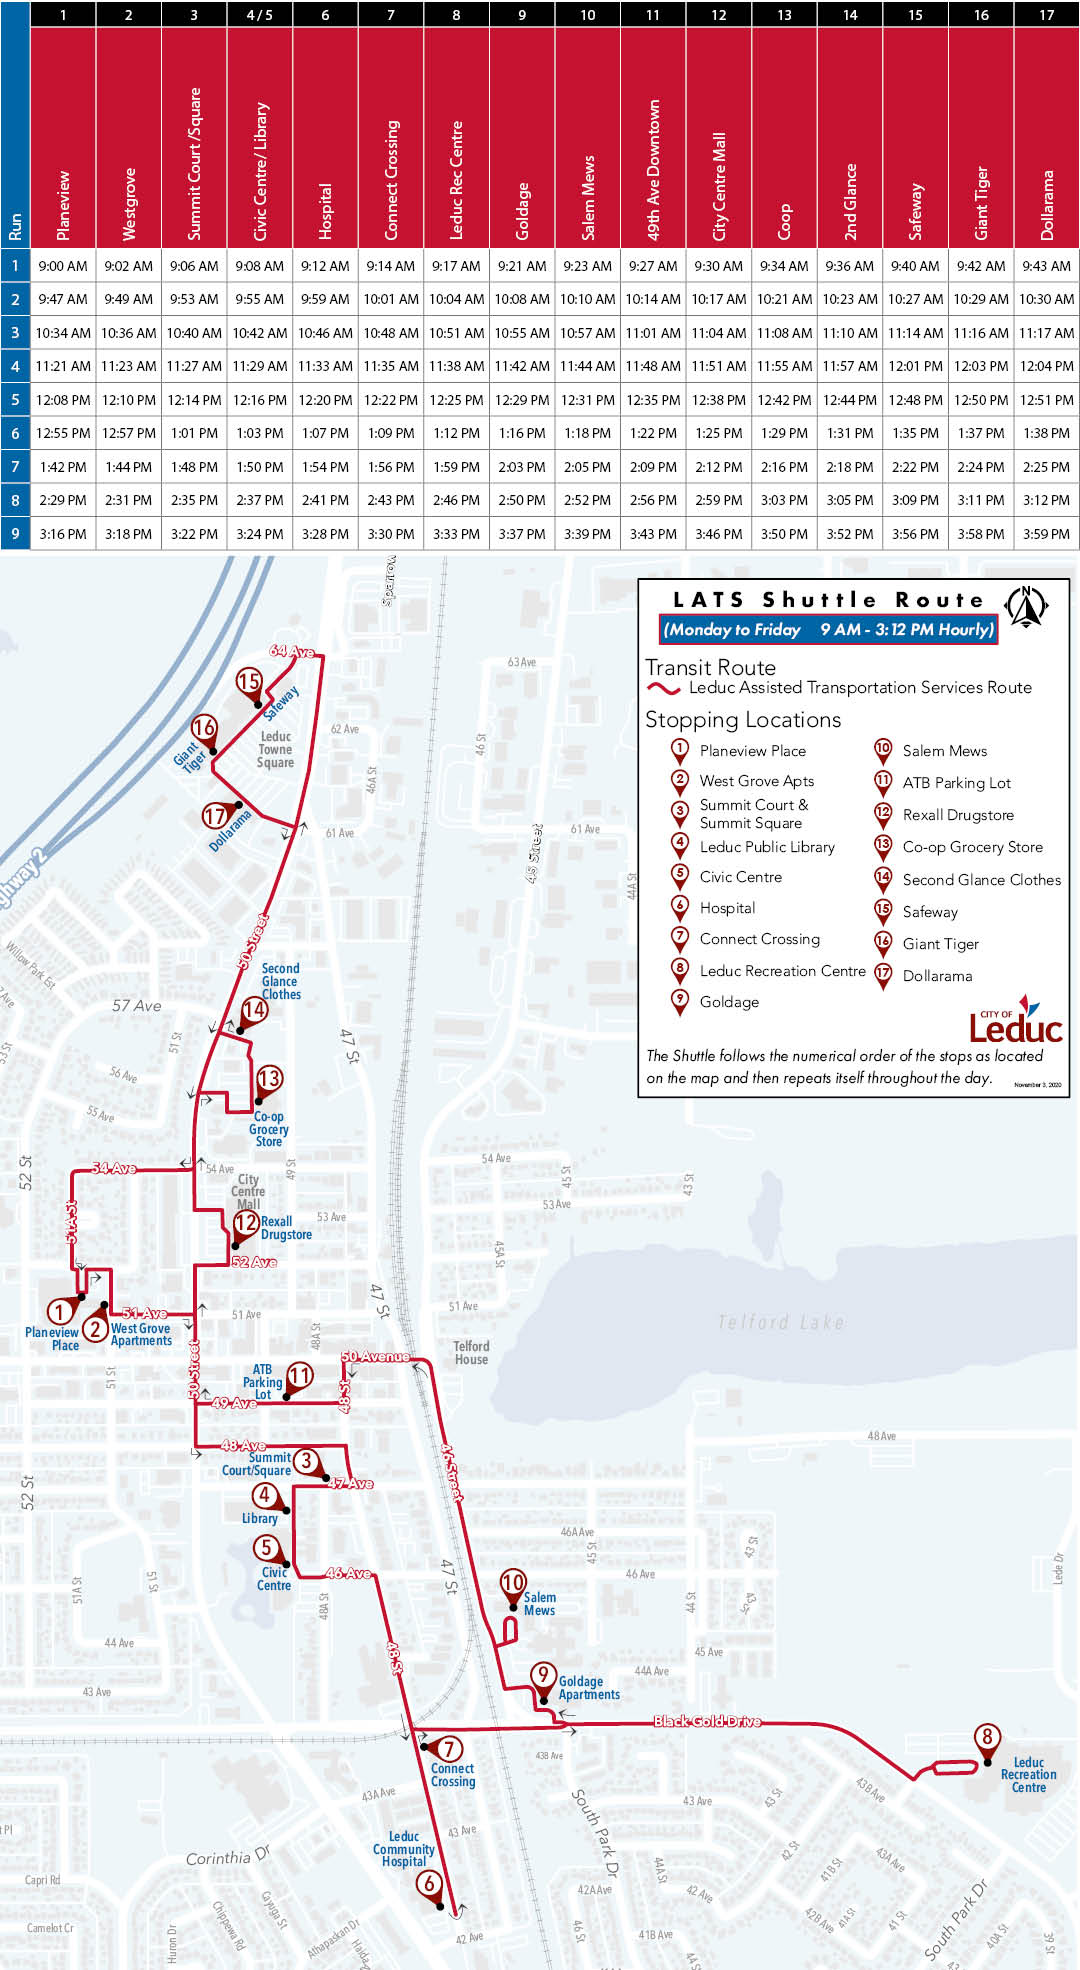 Image of the LATS shuttle schedule and map - updated January 18, 2020